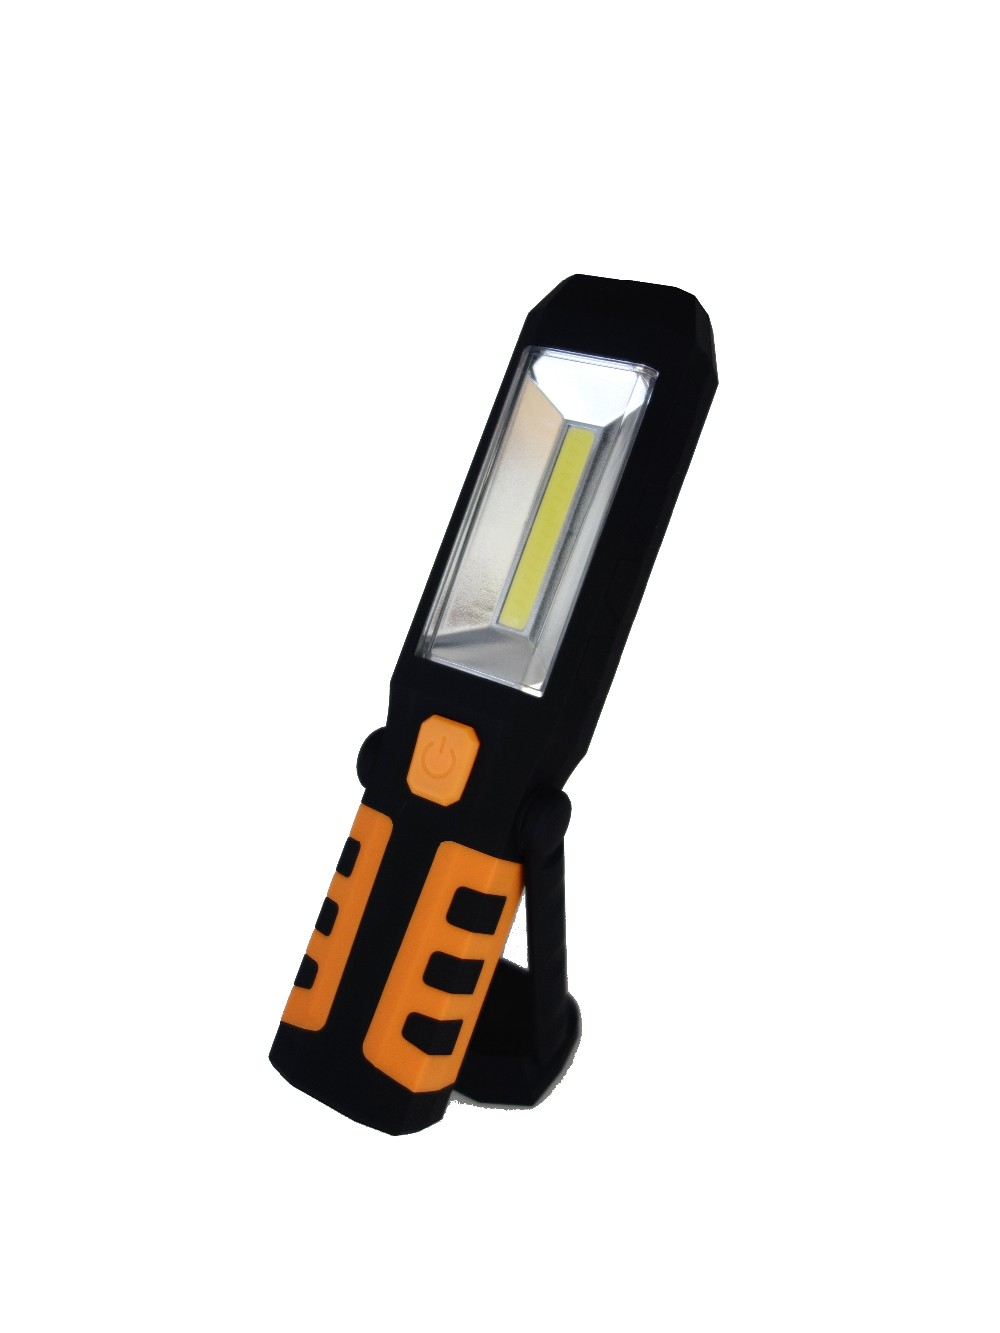 COB + LED Work Light Flexible Inspection Light Lamp Torch Magnetic Super Bright for Mechanic DIY Boating Camping Night Fishing